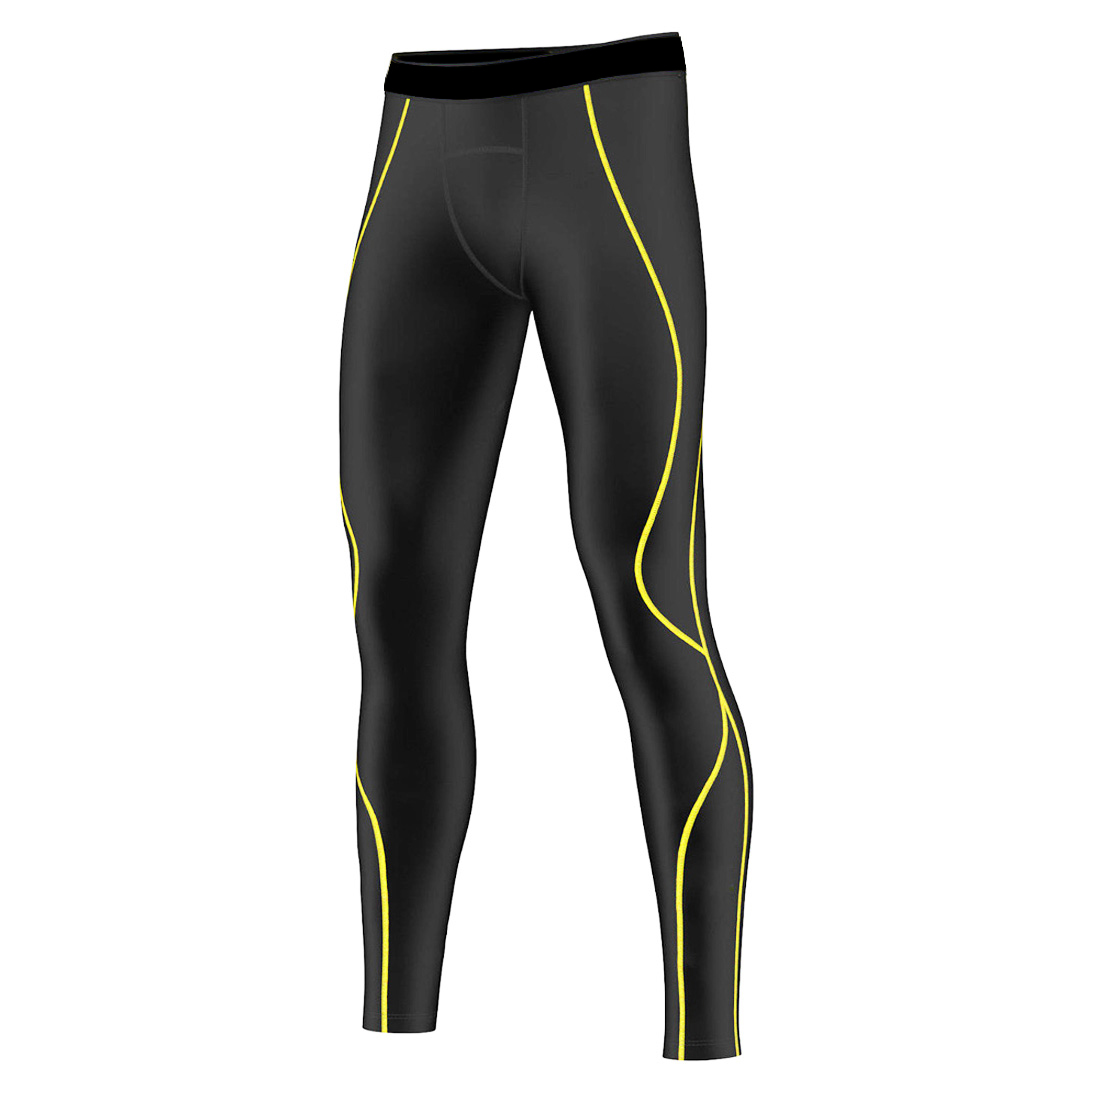 Shop a wide variety of Women's Weight Loss Bottoms from Zaggora™. Free delivery & free returns for 30 days on your Zaggora Women's Fat Burning Pants. Trusted by more than 1 million women. Slim in style with the Original Hot Pants™ Sauna Effect Shorts and Crops.